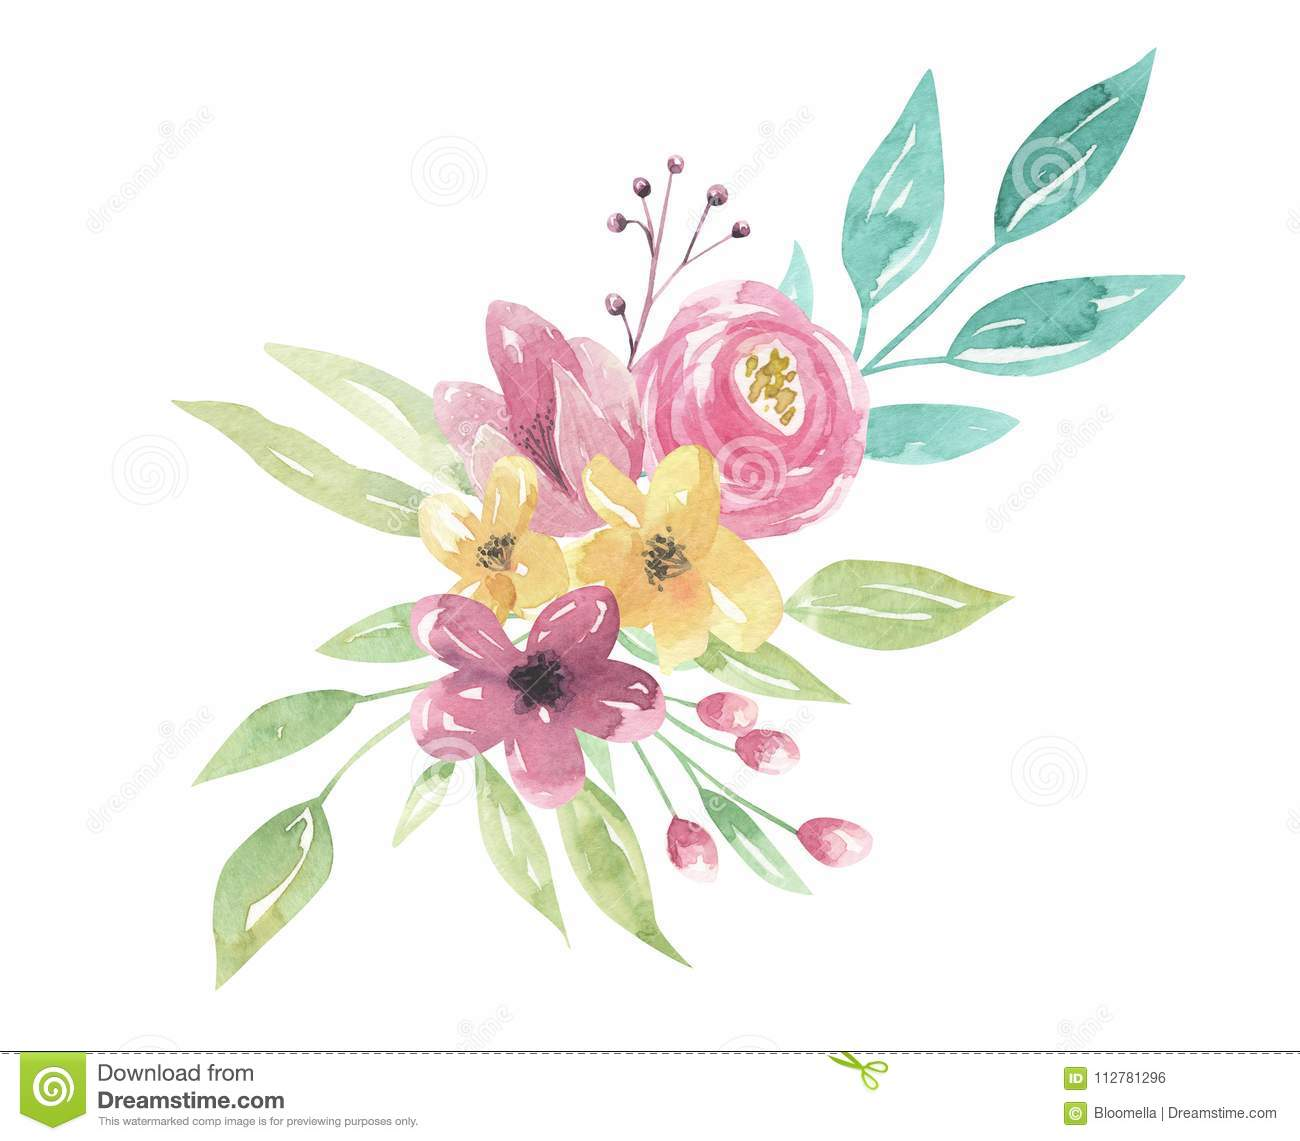 Watercolor floral pink bouquet purple flowers leaves green watercolor floral pink bouquet purple flowers leaves green arrangement izmirmasajfo